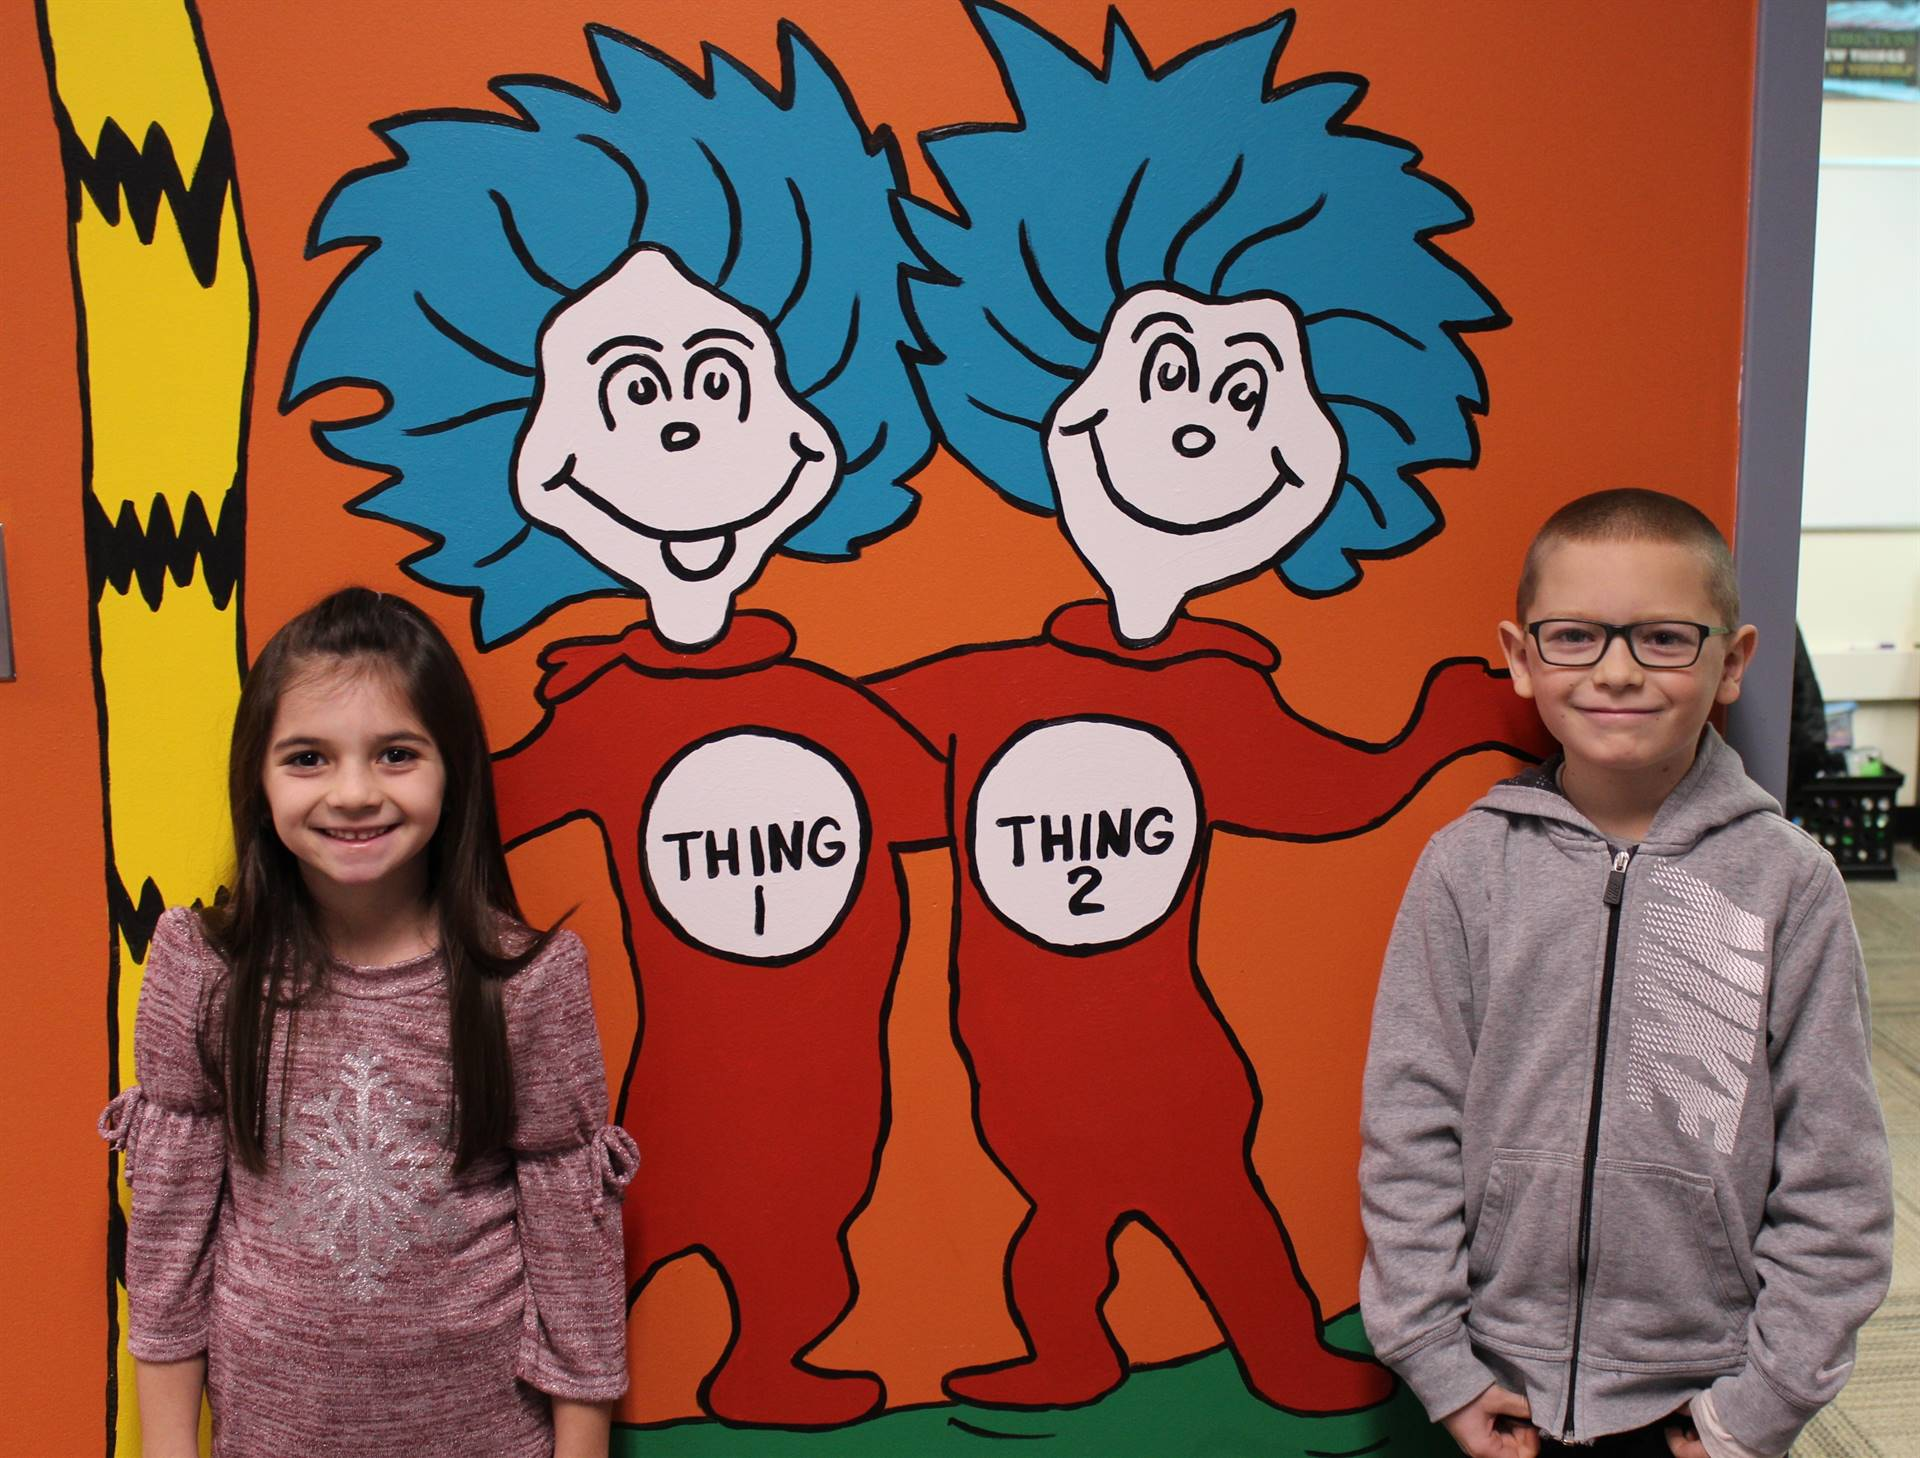 Two students in front of the Dr. Seuss wall